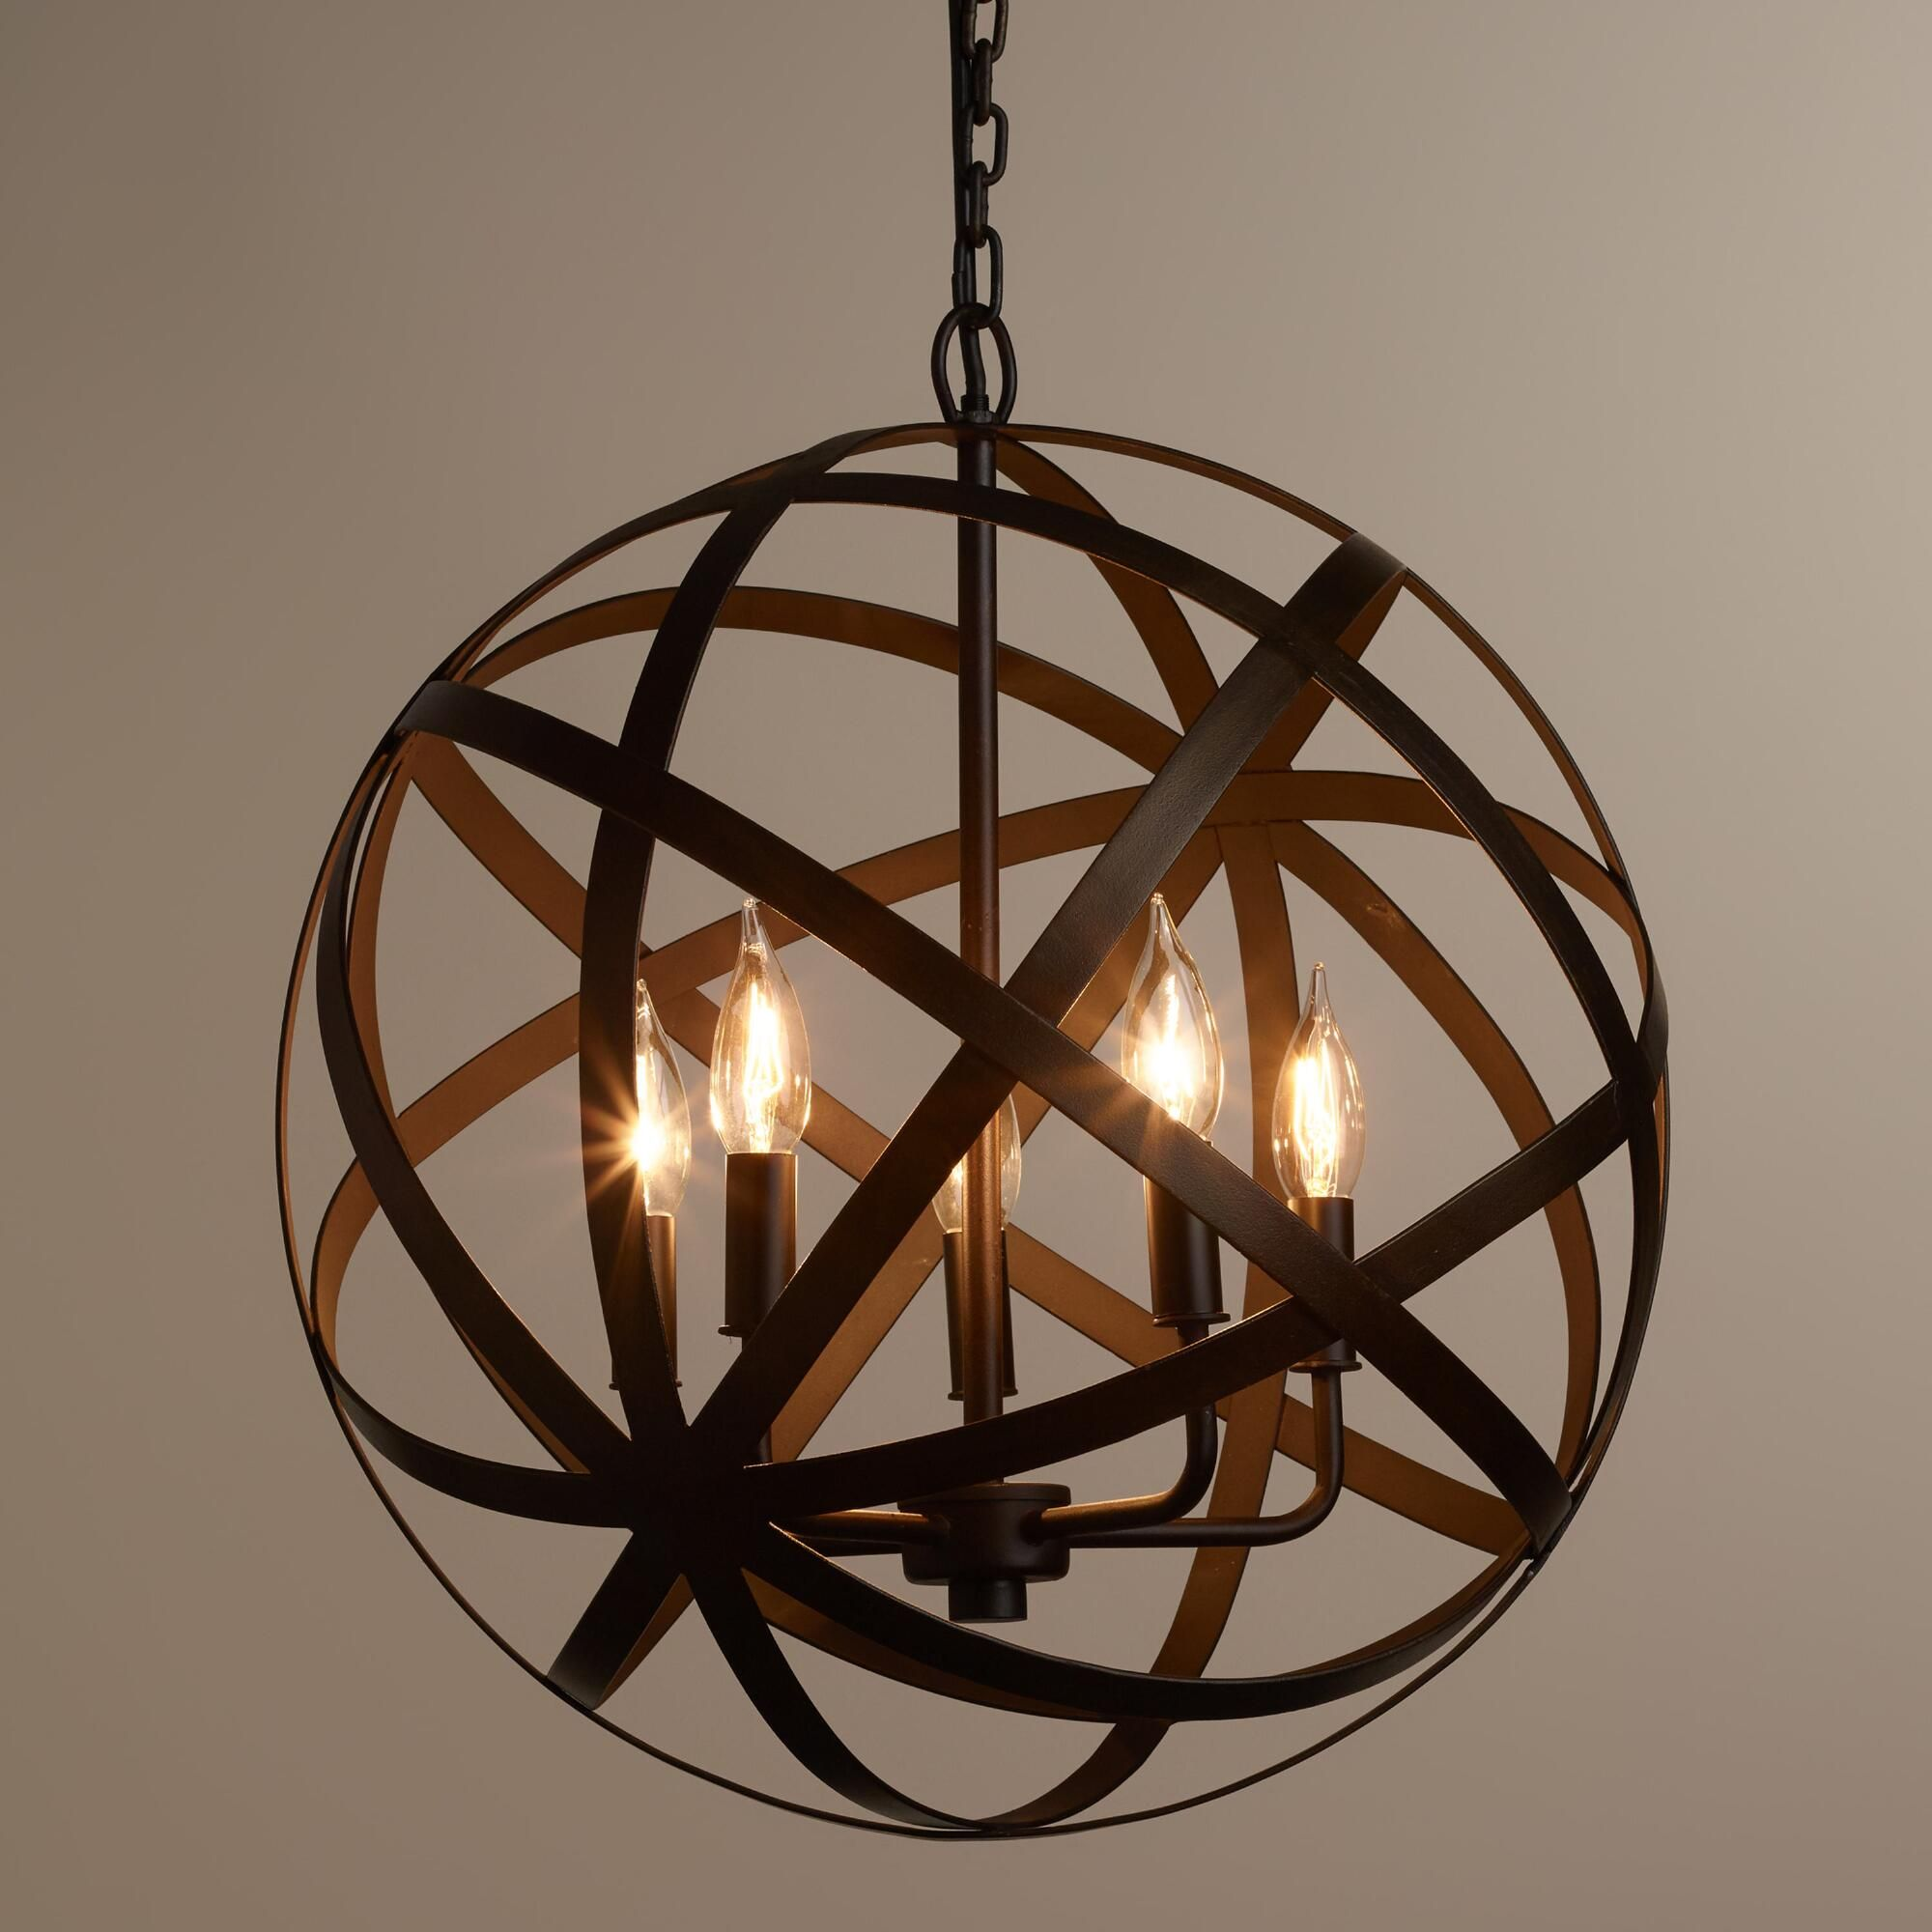 Chandelier Metal: Pendant Lighting, Light Fixtures & Chandeliers | World Market,Lighting